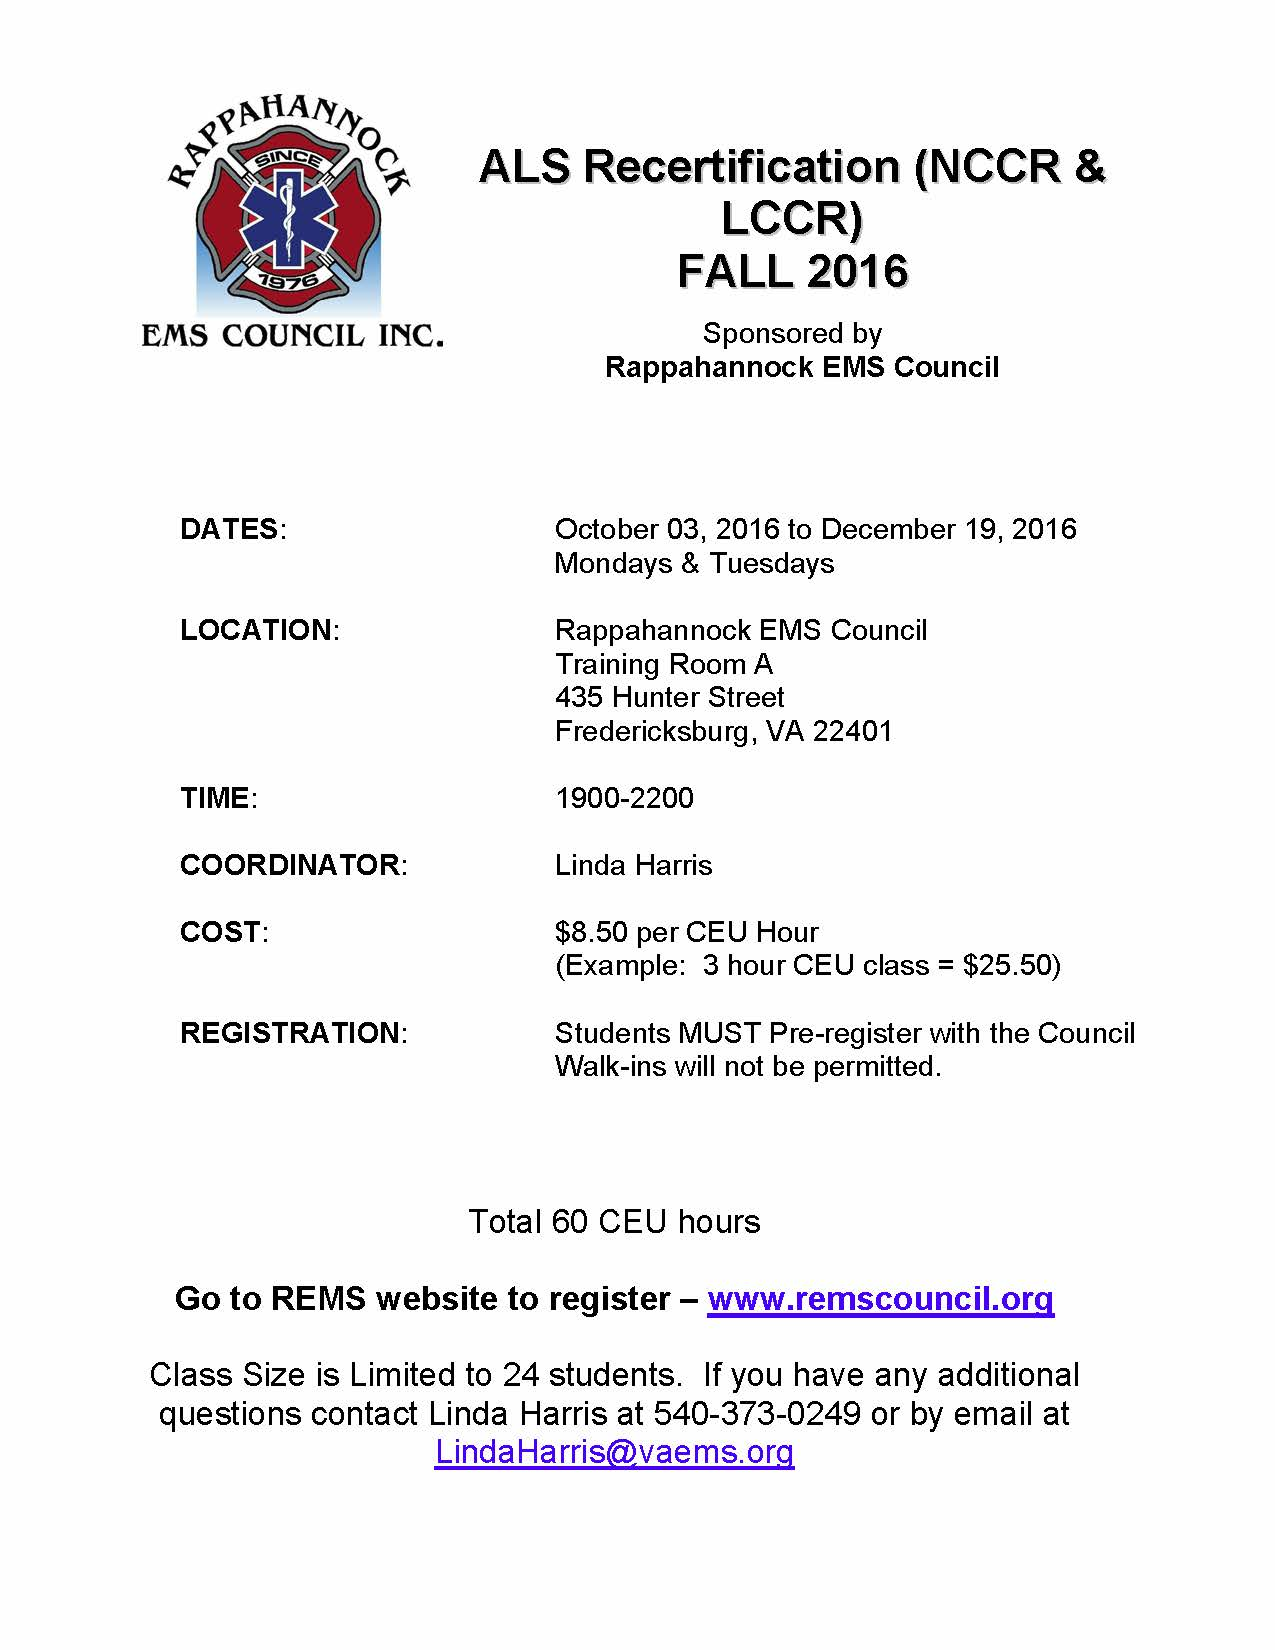 flyer-fall-2016-als-refresher